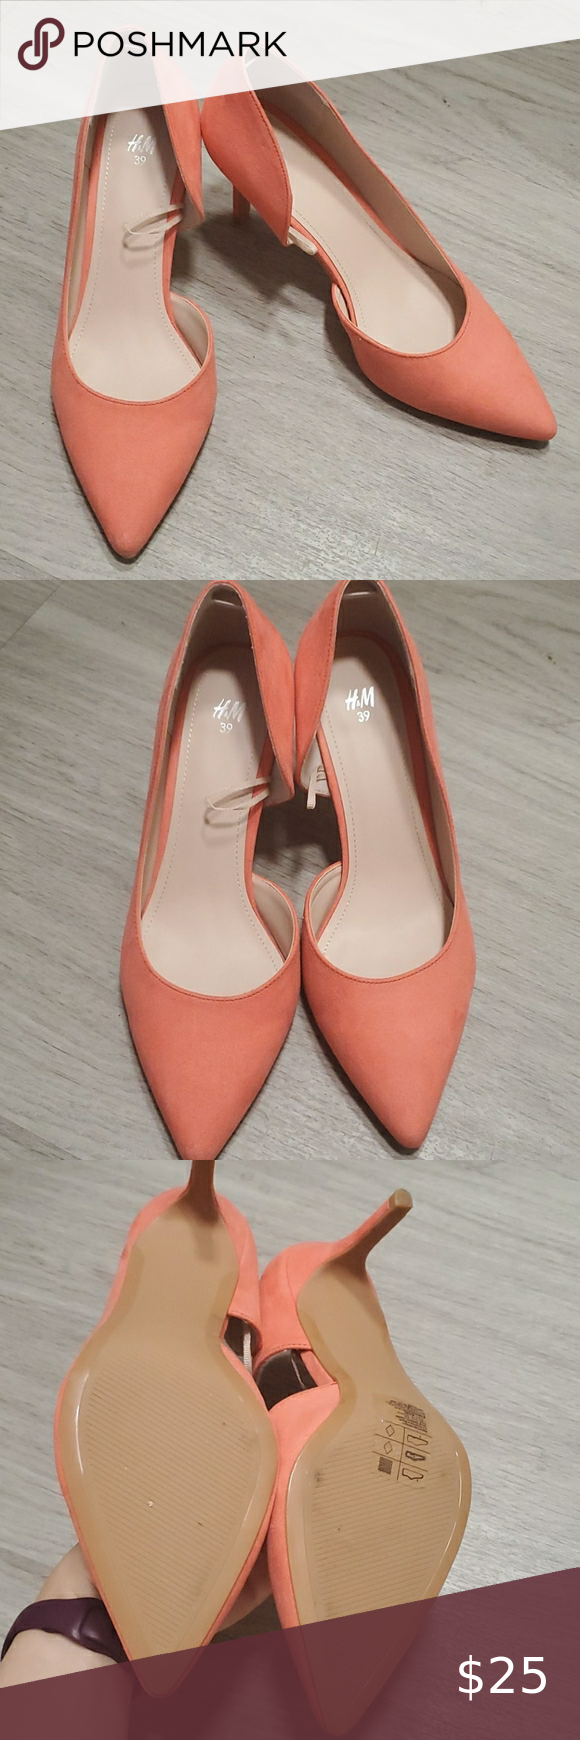 H M Coral Pink Pointy Pumps In 2020 Pointy Pumps Coral Pink Shoes Women Heels